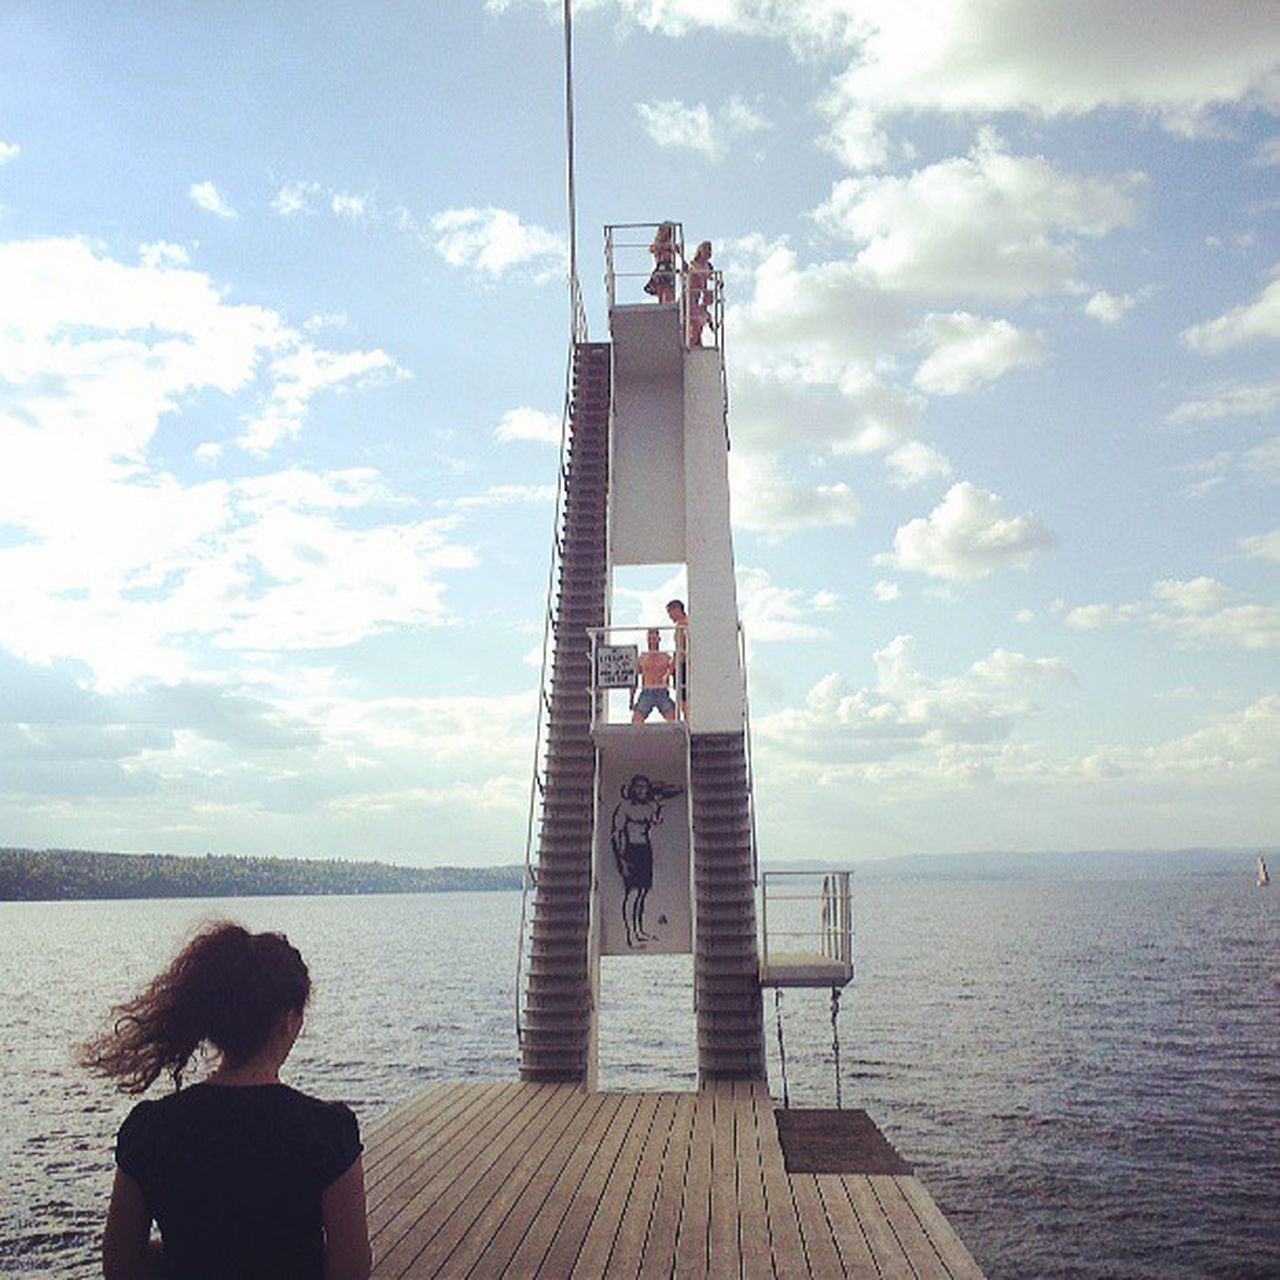 Ingj ærstrand Norge Bluesky Sunshine solskinn oslo akershus stupetårn stuping diving divingtower summer sommer bathing bading norway